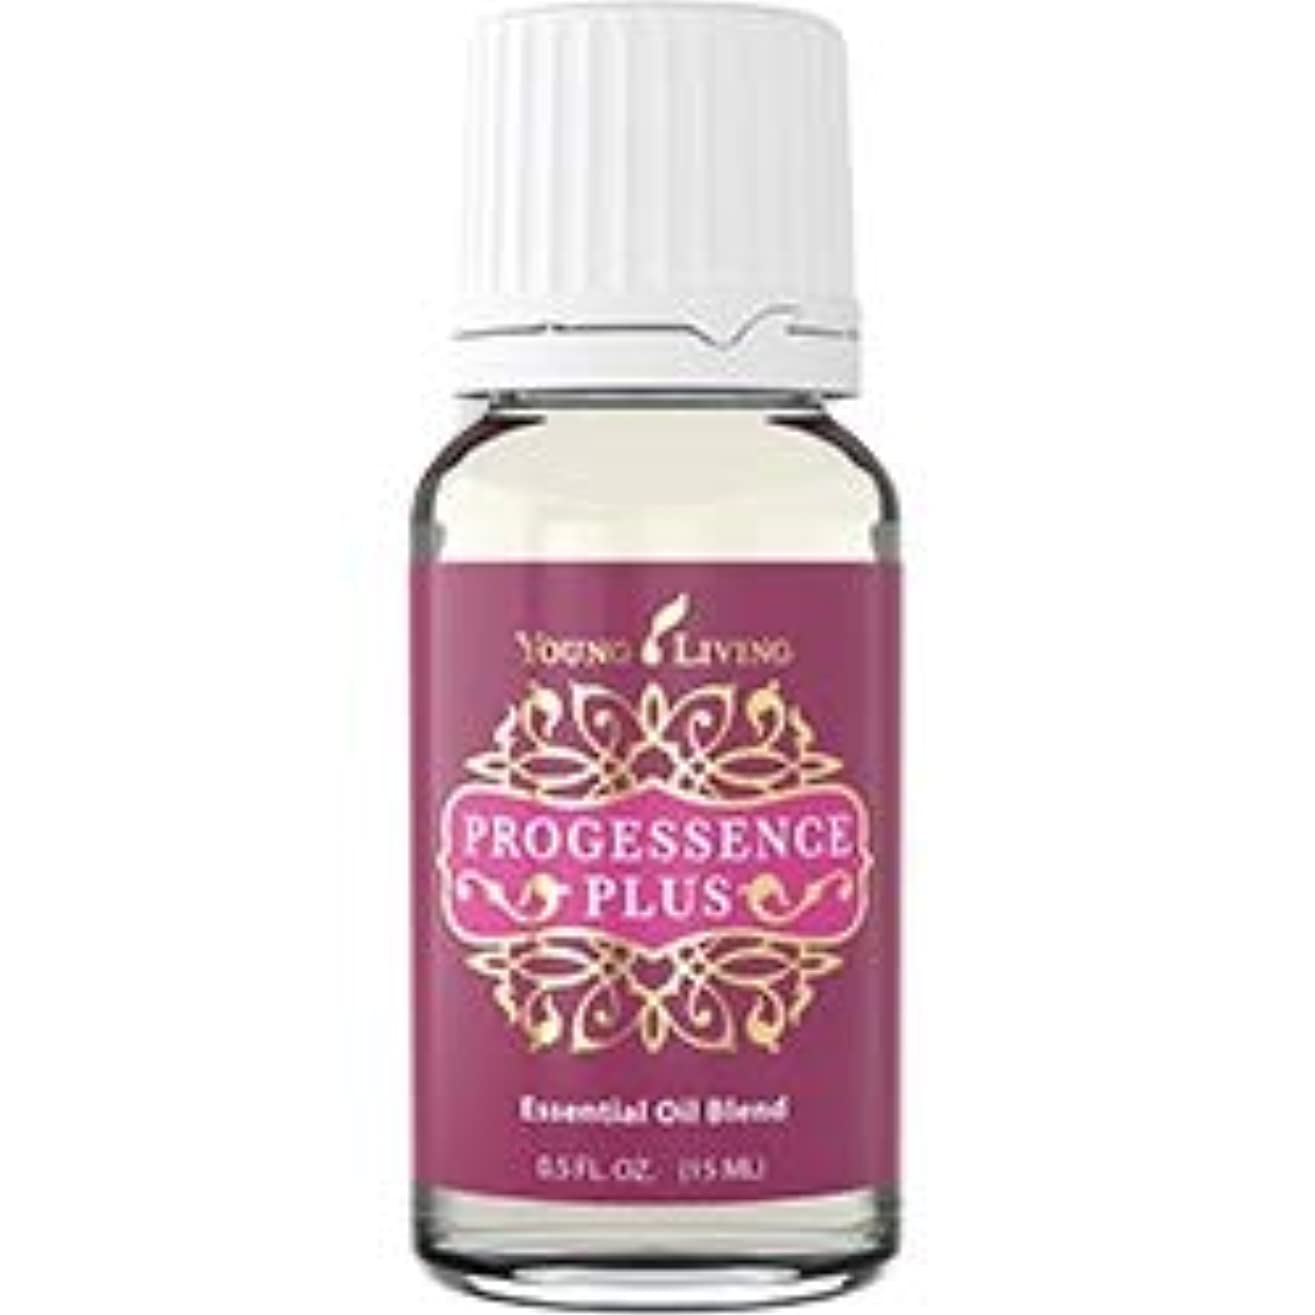 骨の折れる製造業速記Progessence Phyto Plus 15ml byヤングリビングエッセンシャルオイル Progessence Phyto Plus 15ml by Young Living Essential Oil